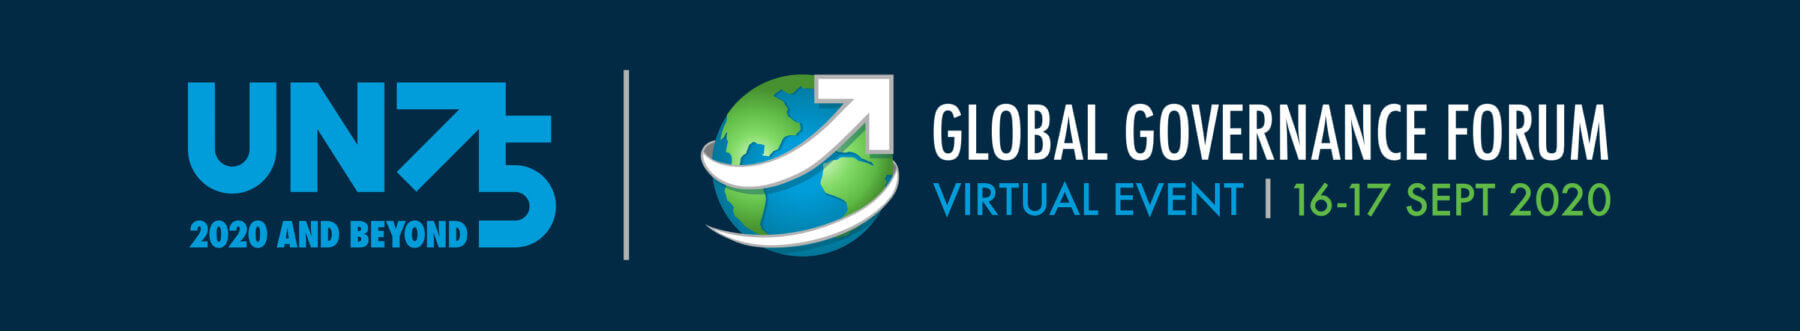 GGF Virtual Forum Earth globe logo